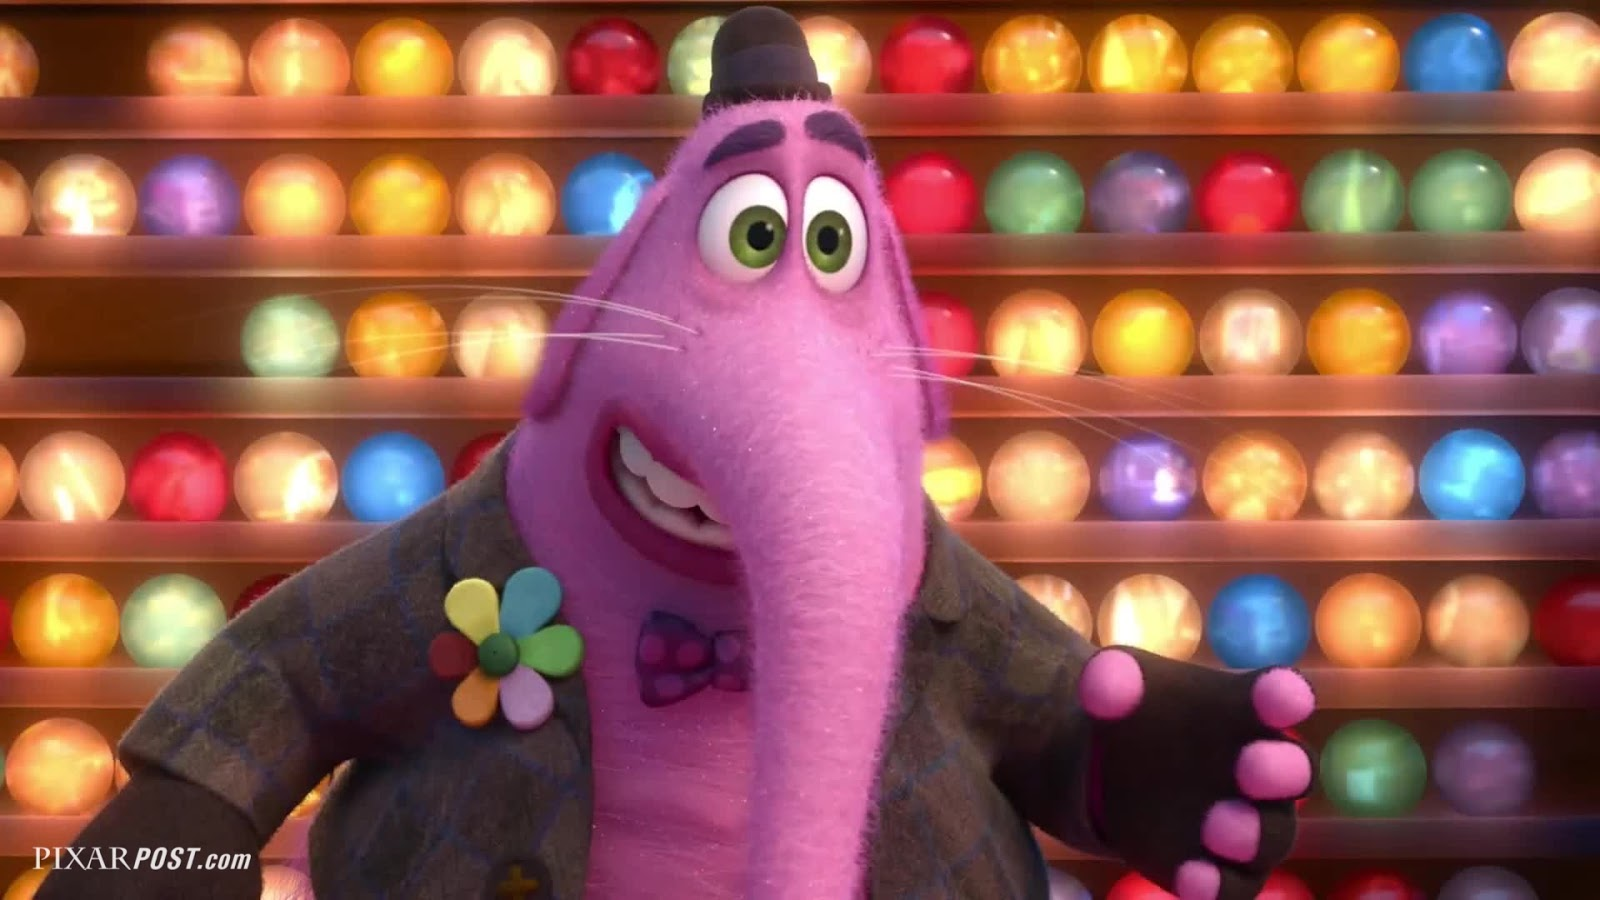 The Inside Out Files: 8 Pixar Facts About Your Feelings